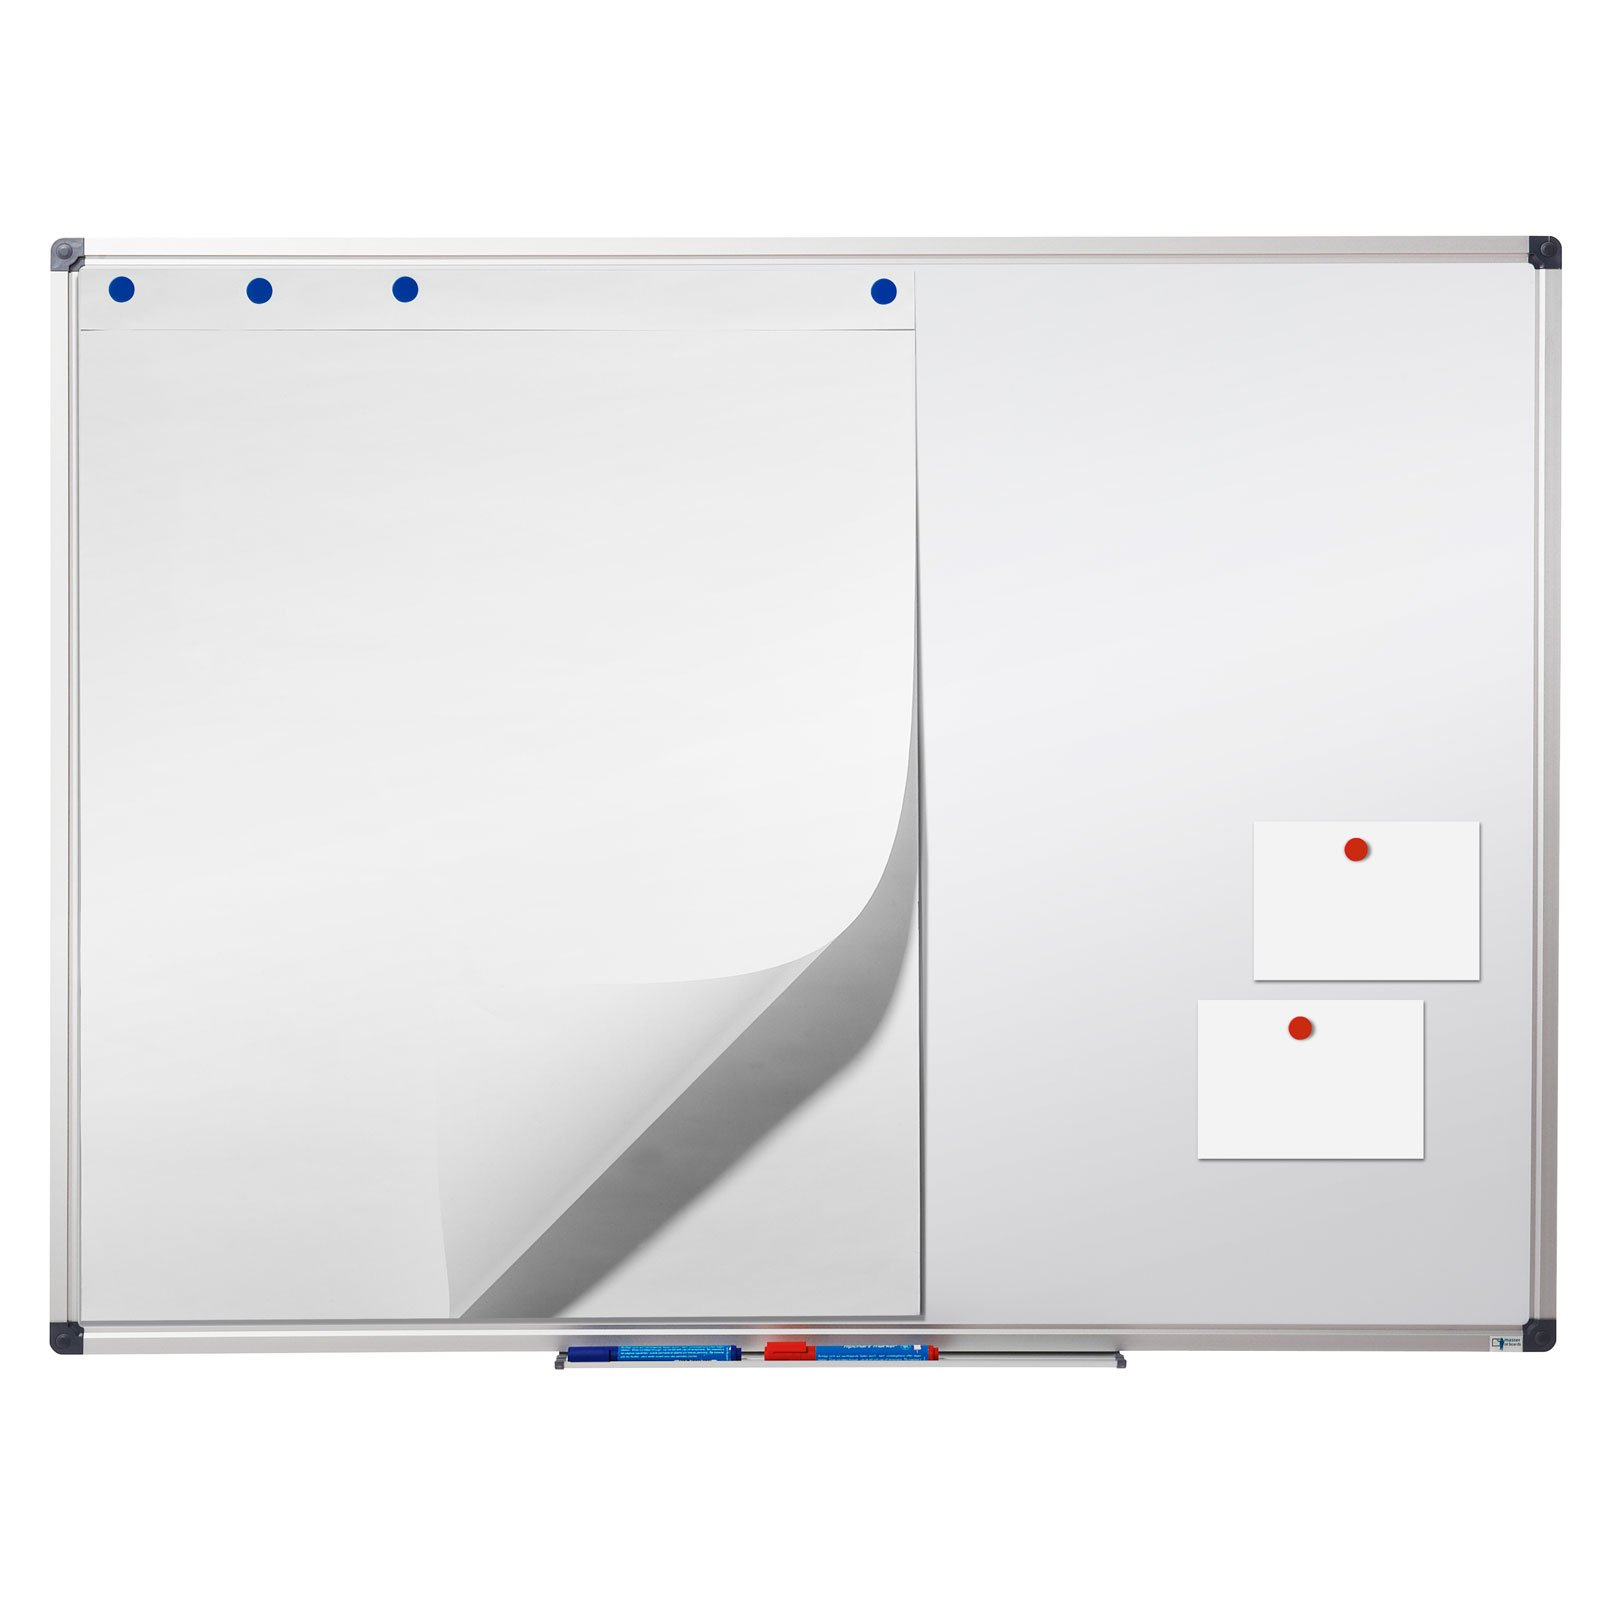 Master of Boards White Board | Magnet Dry Erase Board | Magnetic Message and Memo Planner for Commercial or Private Use | 4 Sizes | 36'' x 24'' by Master of Boards (Image #3)